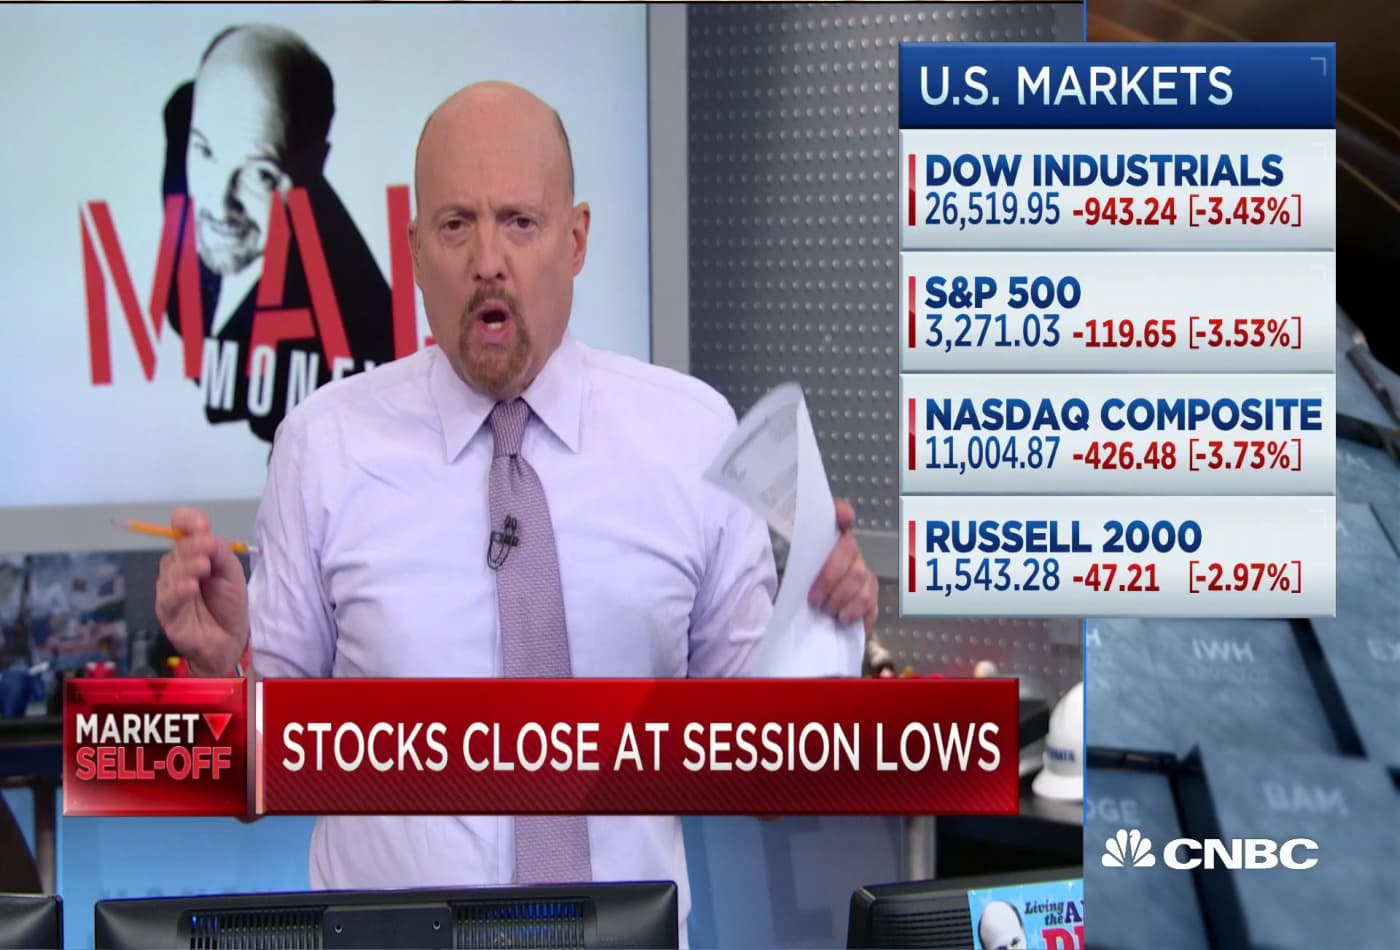 'This is not a secular, systematic decline': Jim Cramer on the sell-off